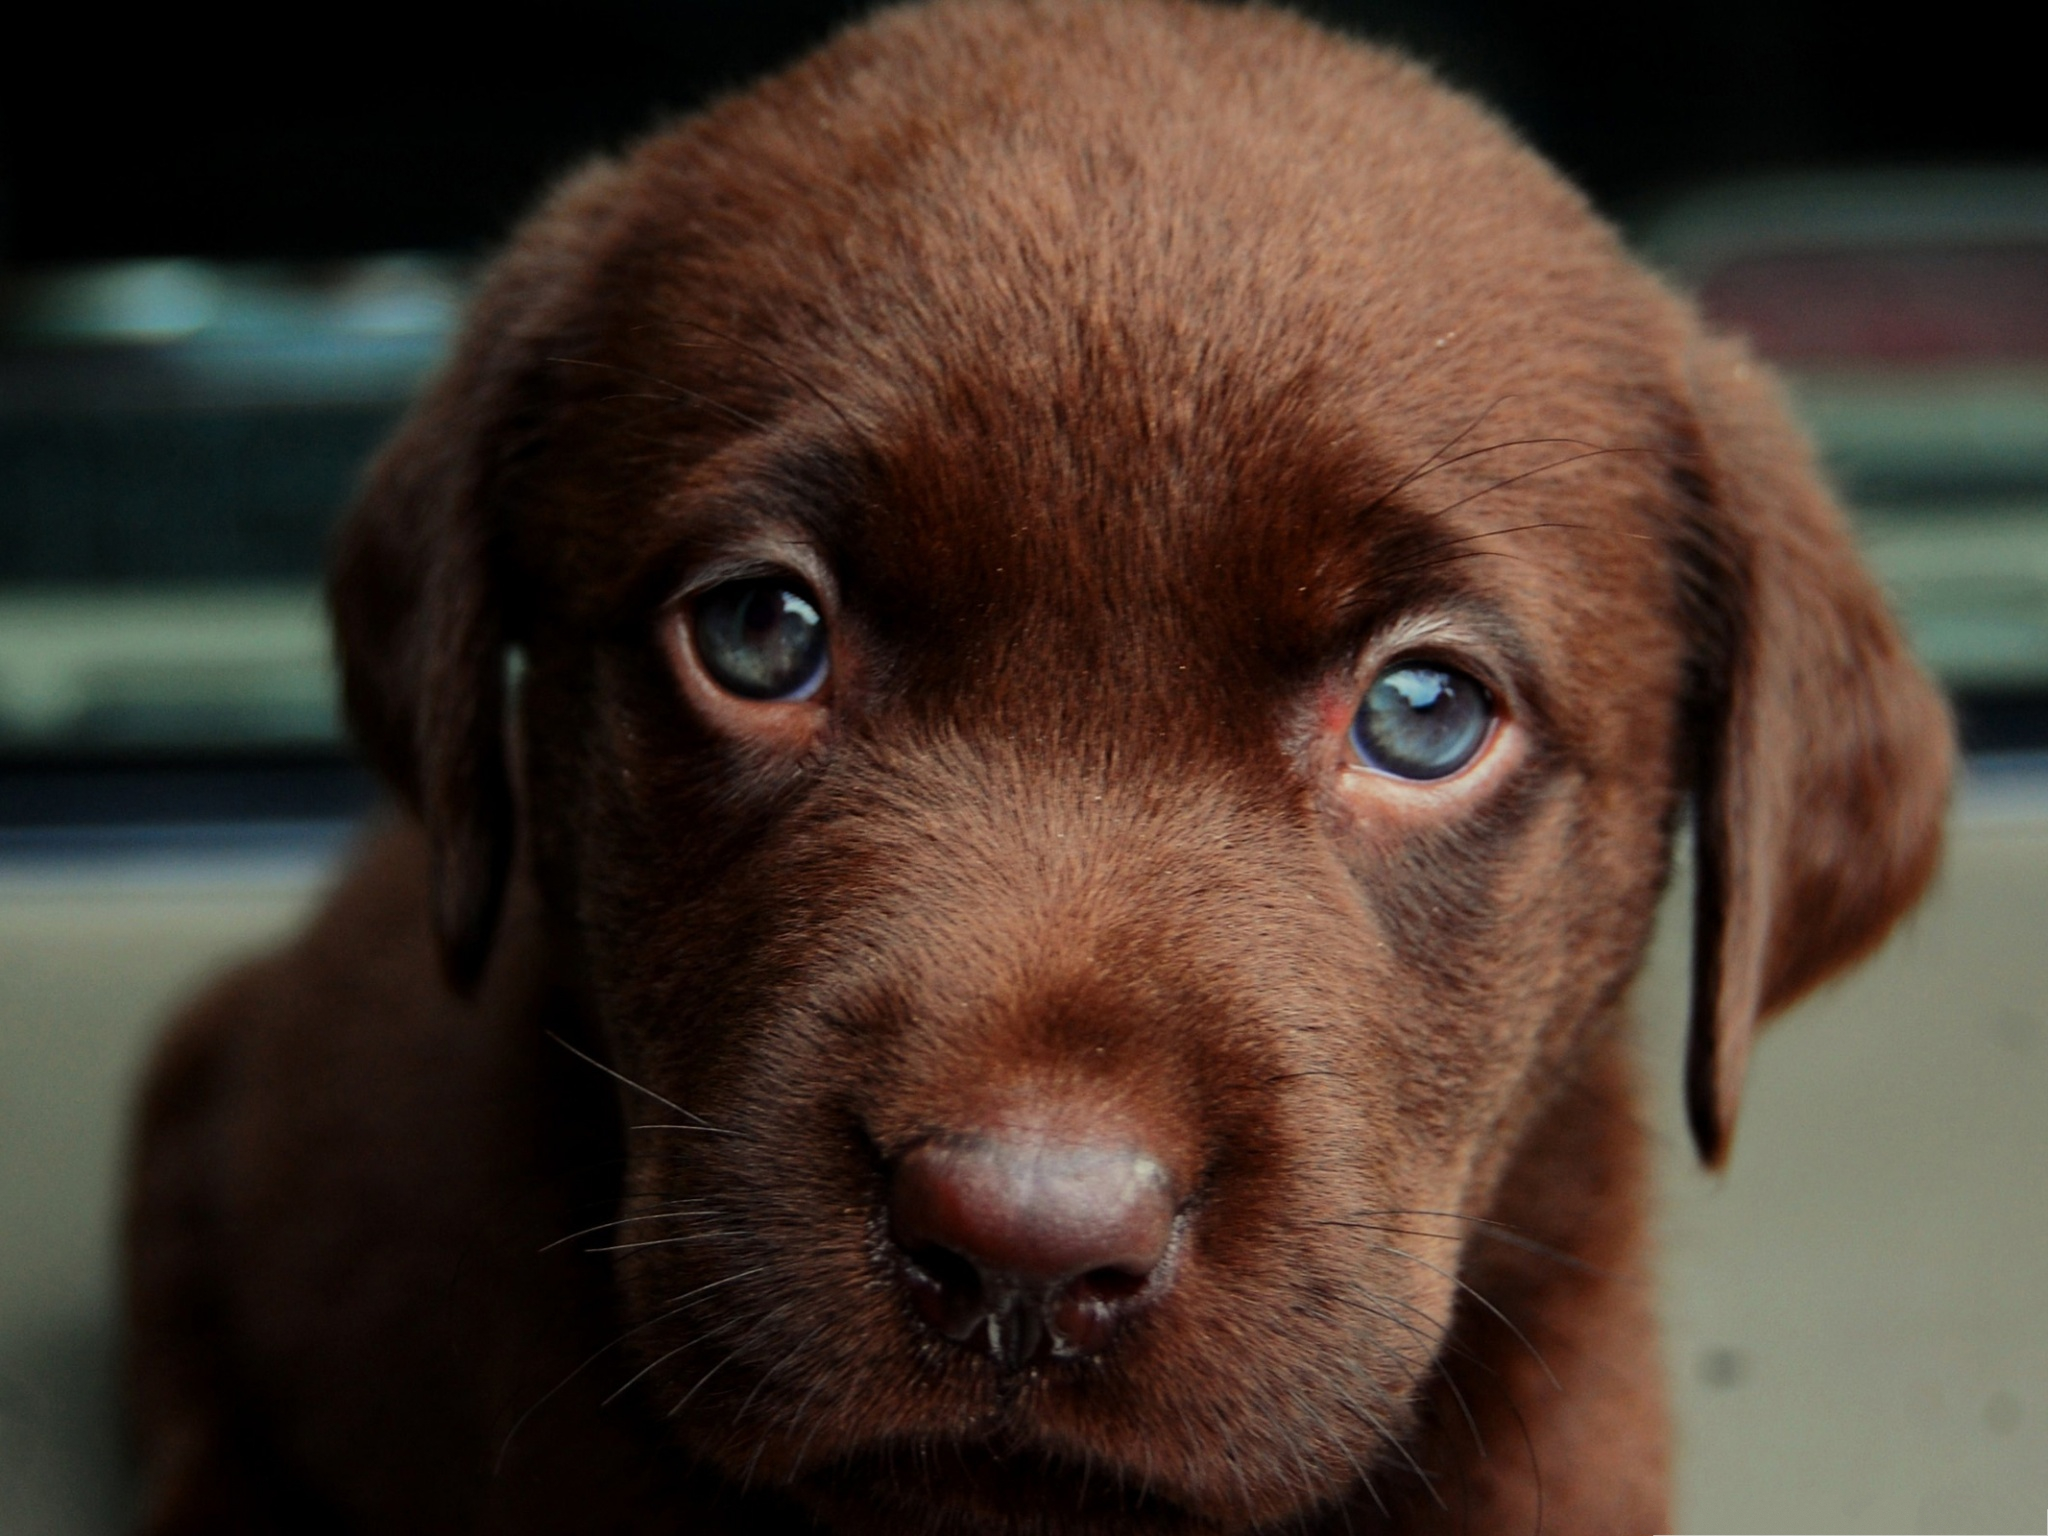 click to free download the wallpaper--Cute Puppy Image, Chocolate Dog in Blue Eyes, Innocent Look 2048X1536 free wallpaper download